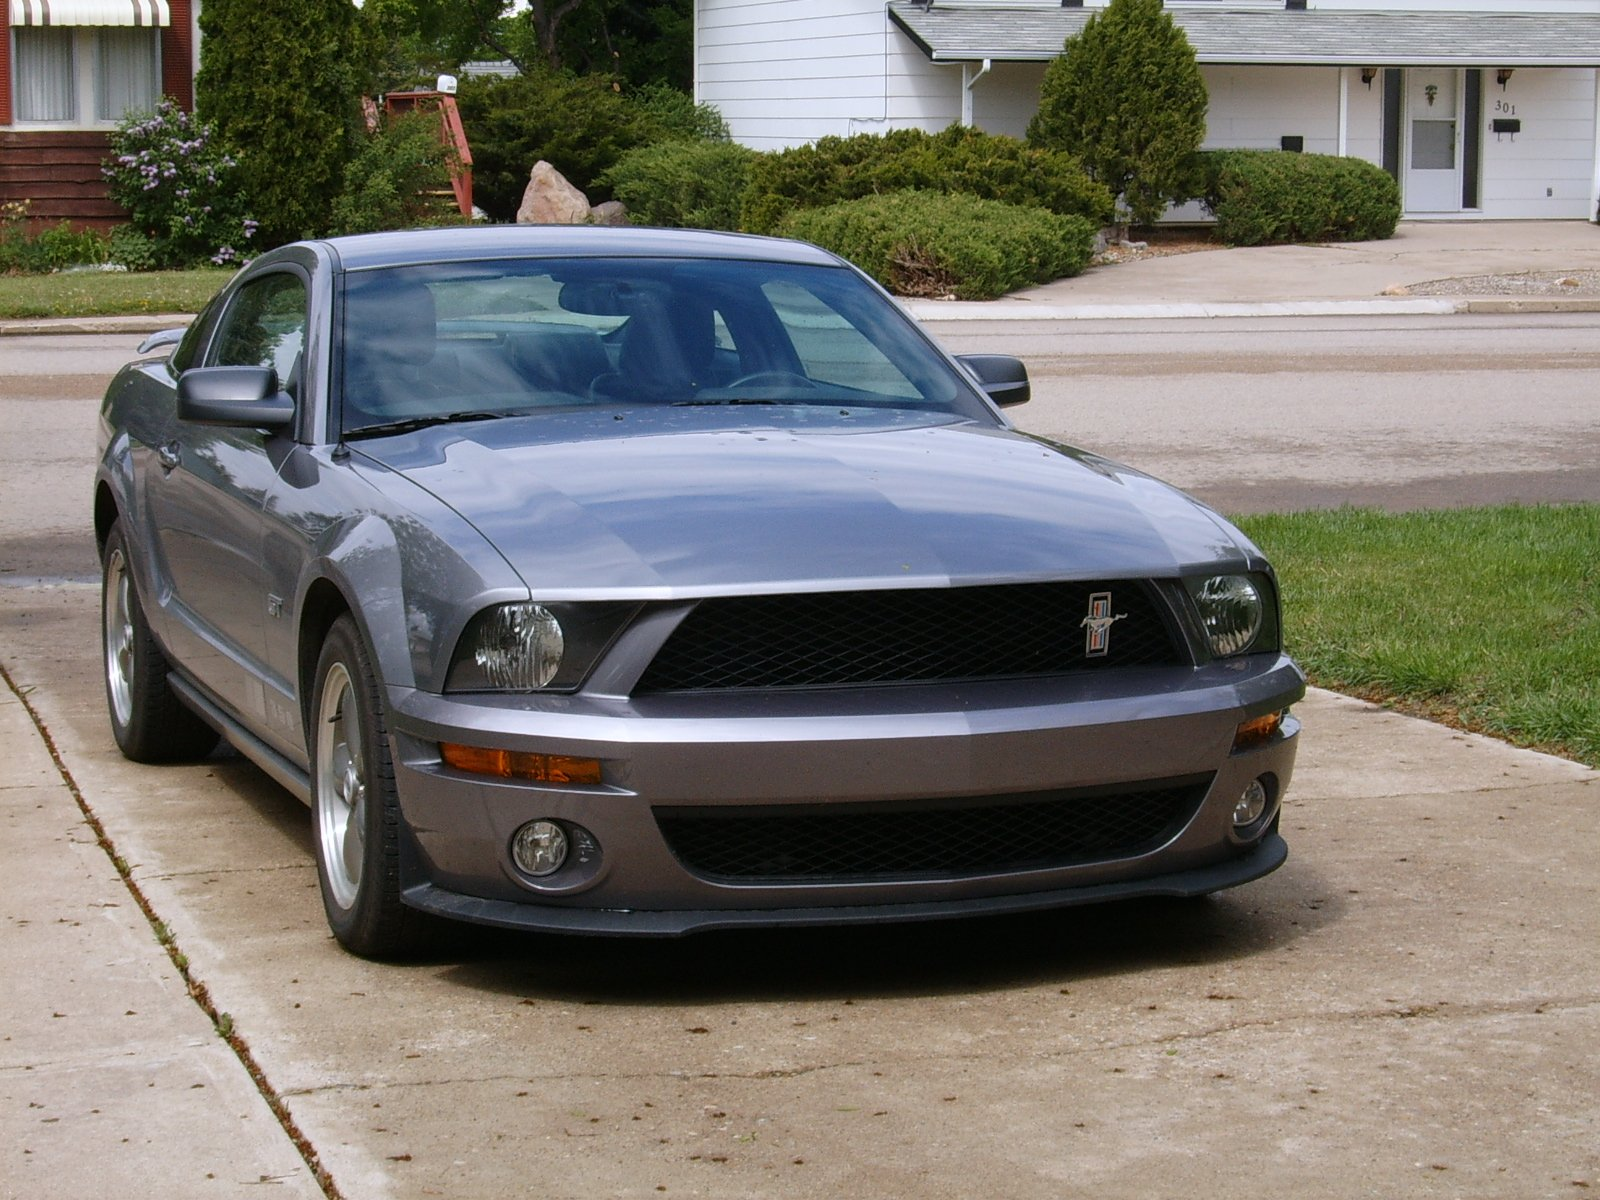 shelby gt500 front fascia on an 2005 mustang gt ford. Black Bedroom Furniture Sets. Home Design Ideas